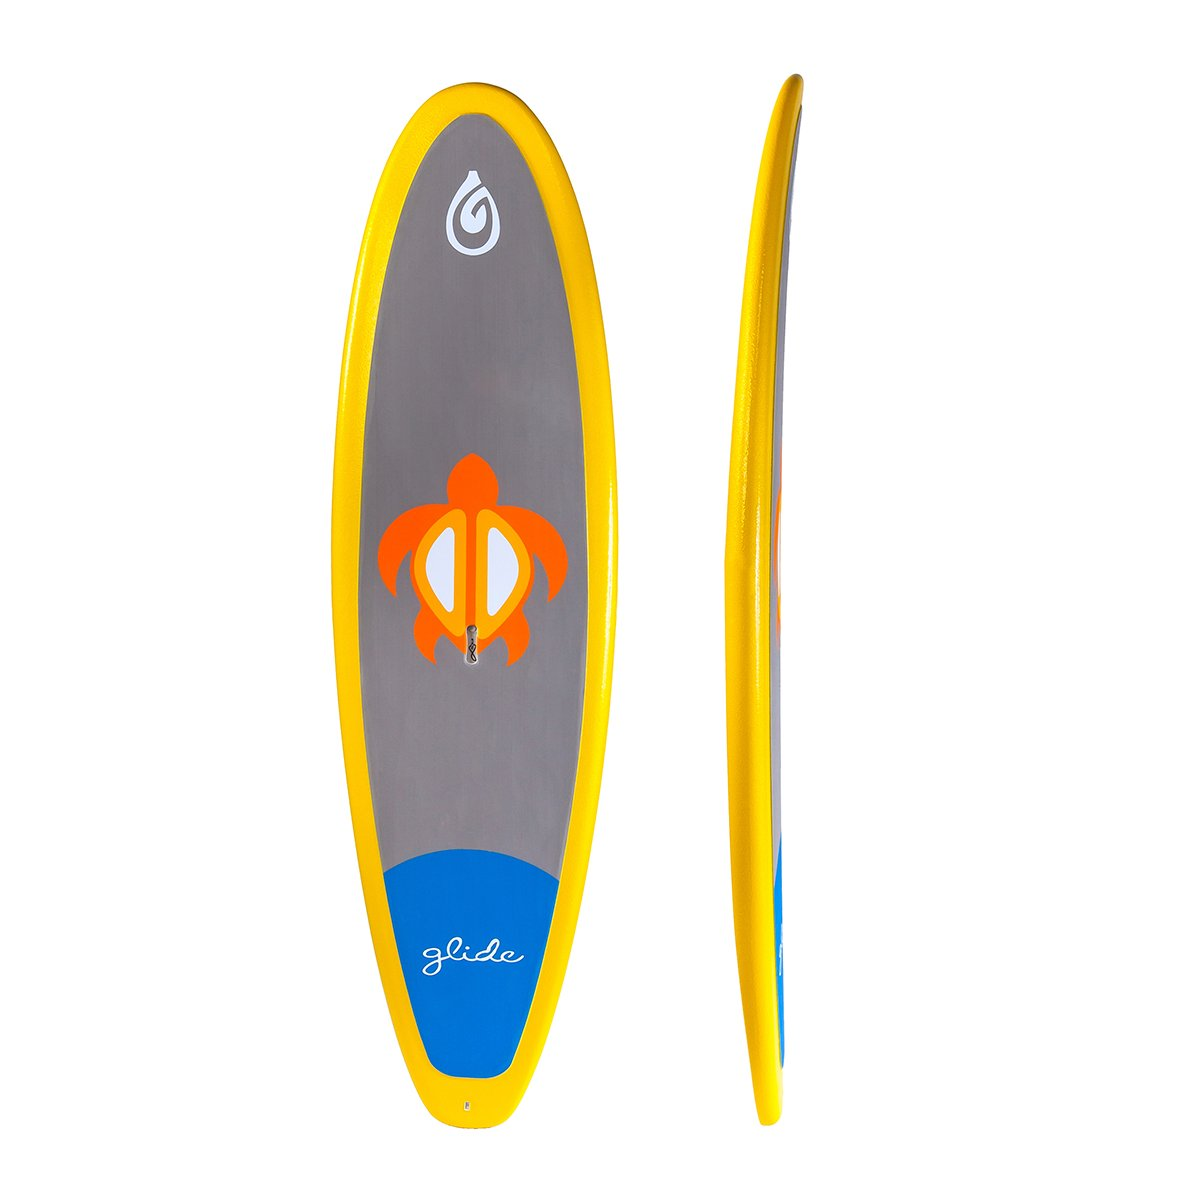 """Keiki: The Keiki is designed for the smallest of paddler to navigate the waterways. Coated in Glide's patent-pending GSS coating, this board ready for any abuse a little paddler can muster. At 8'4"""" x 28"""" x 18 lbs, the Keiki is a great board for paddlers up to 120 lbs and can be used in surf, flat-water and river play. The Keiki is the most durable SUP on the market and priced to be more affordable than competing boards."""